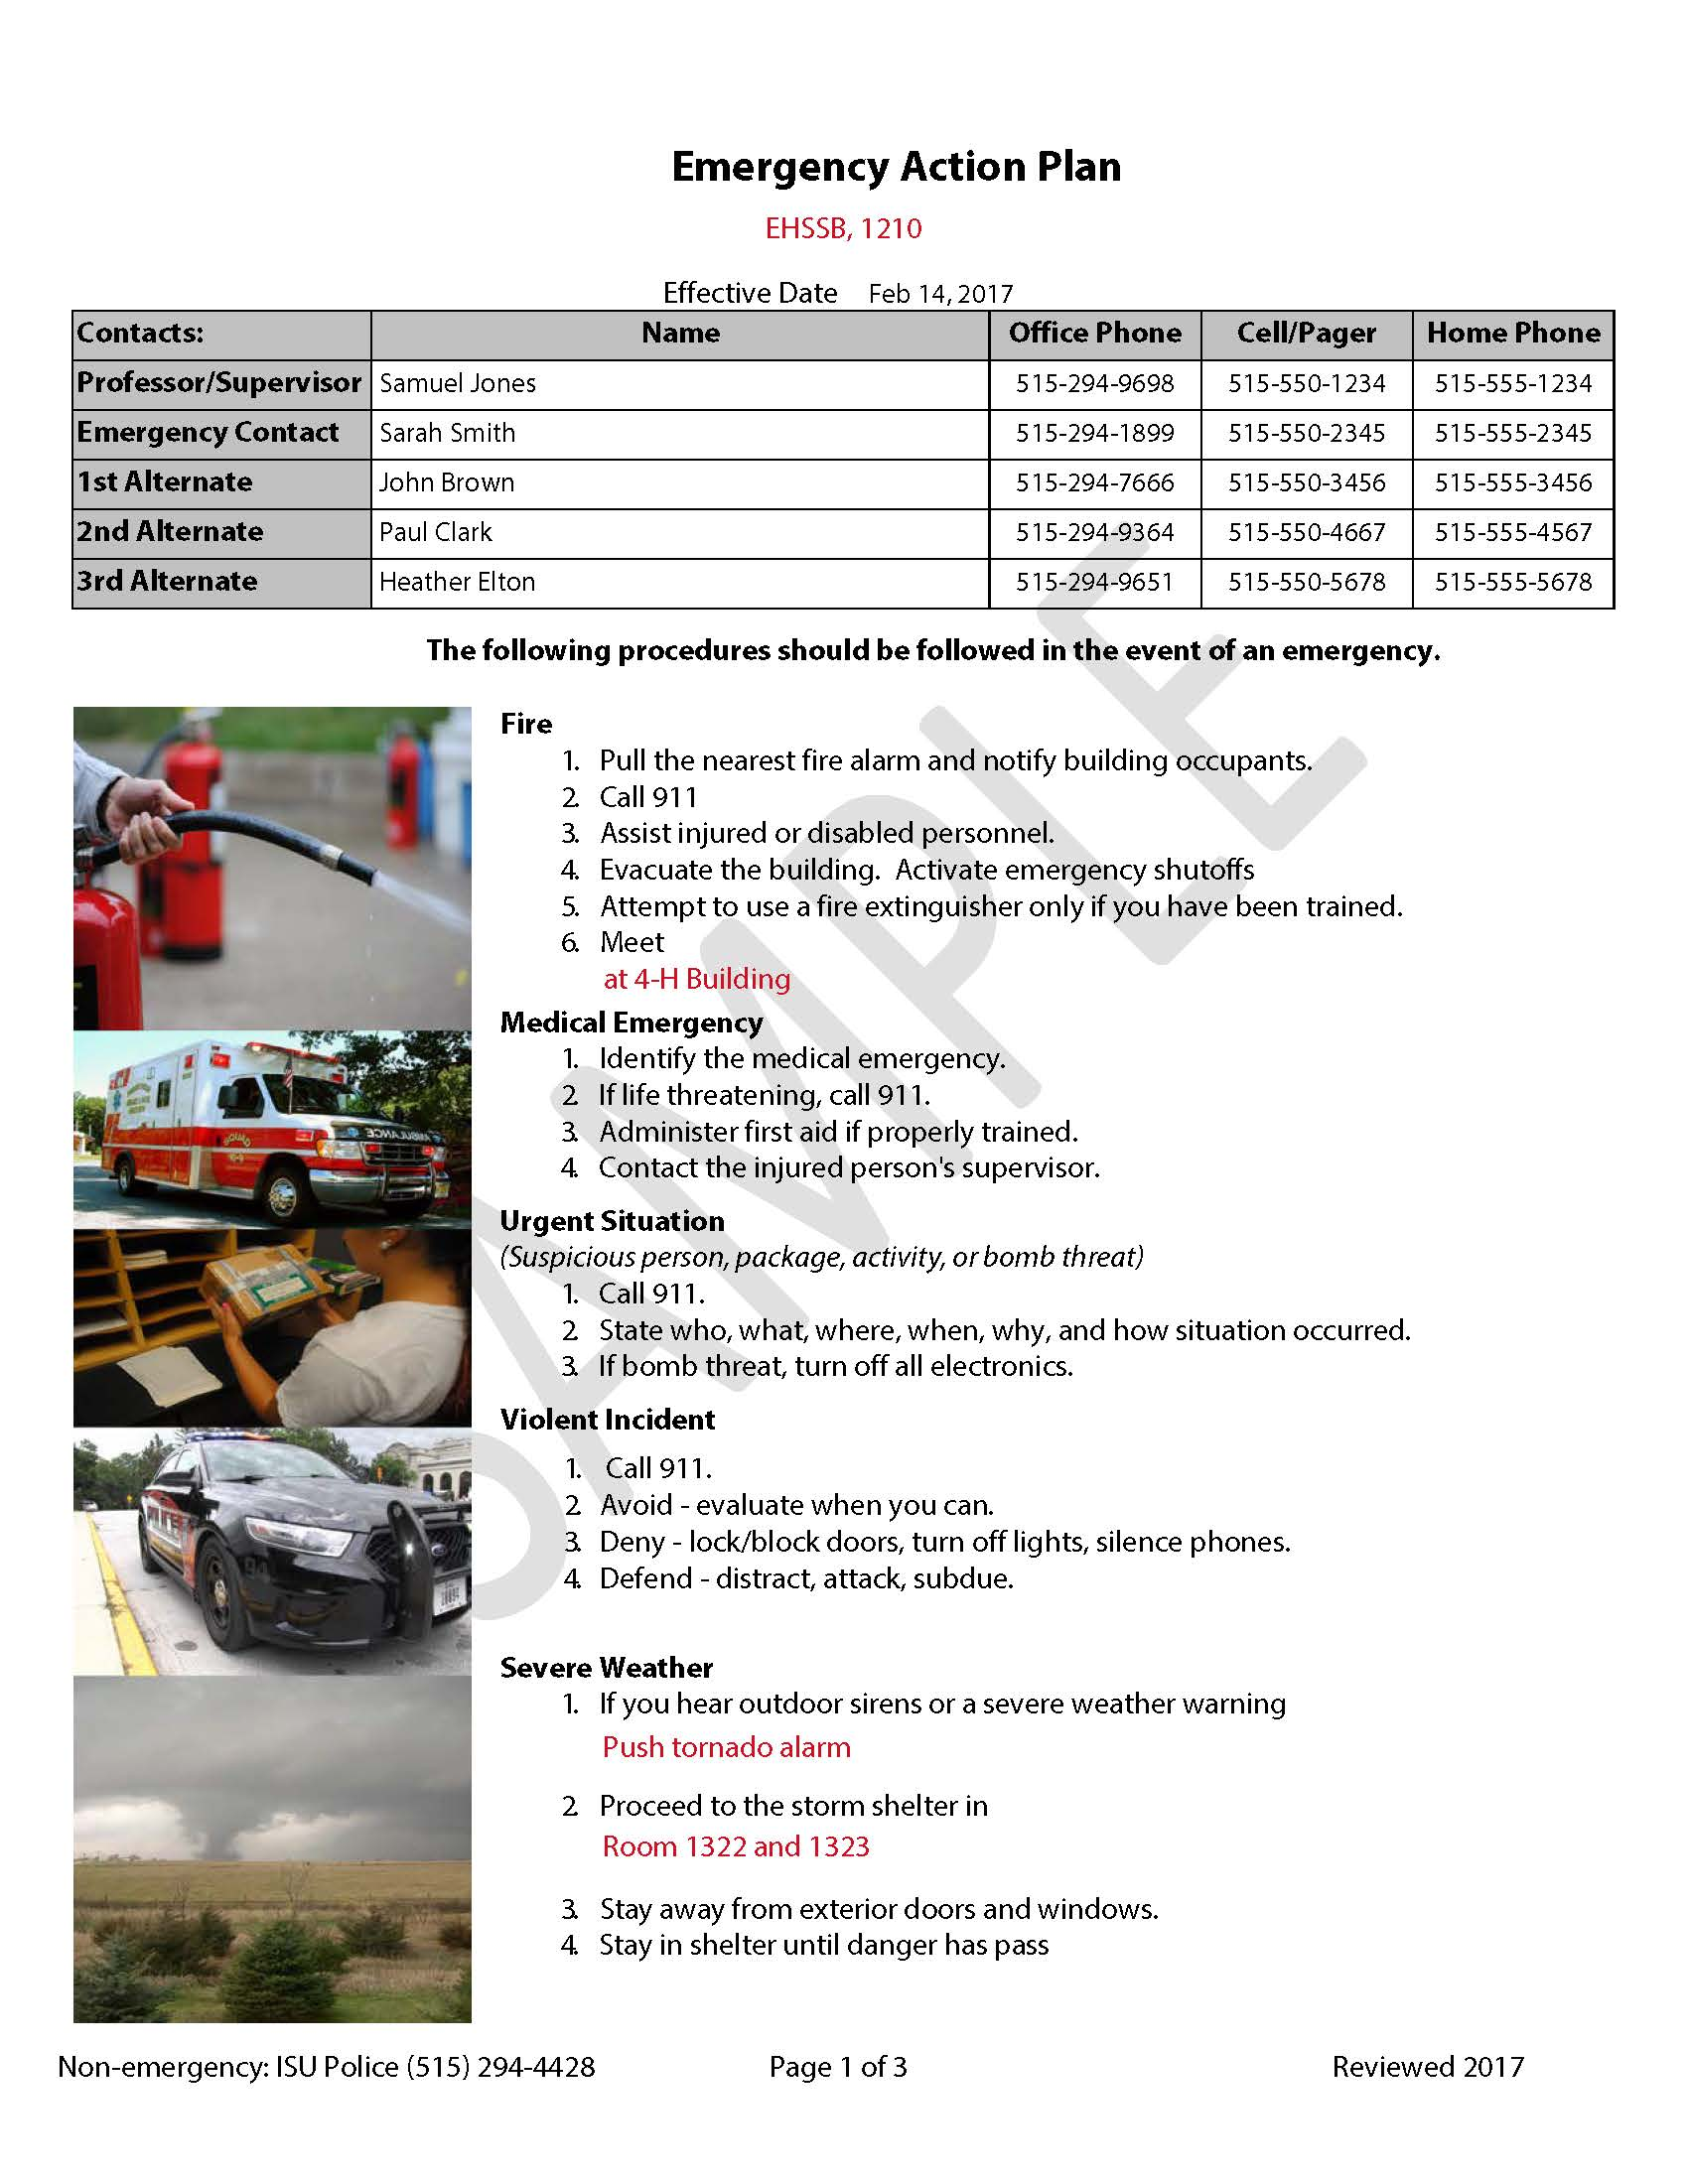 Emergency Action Plans – Emergency Action Plan Sample